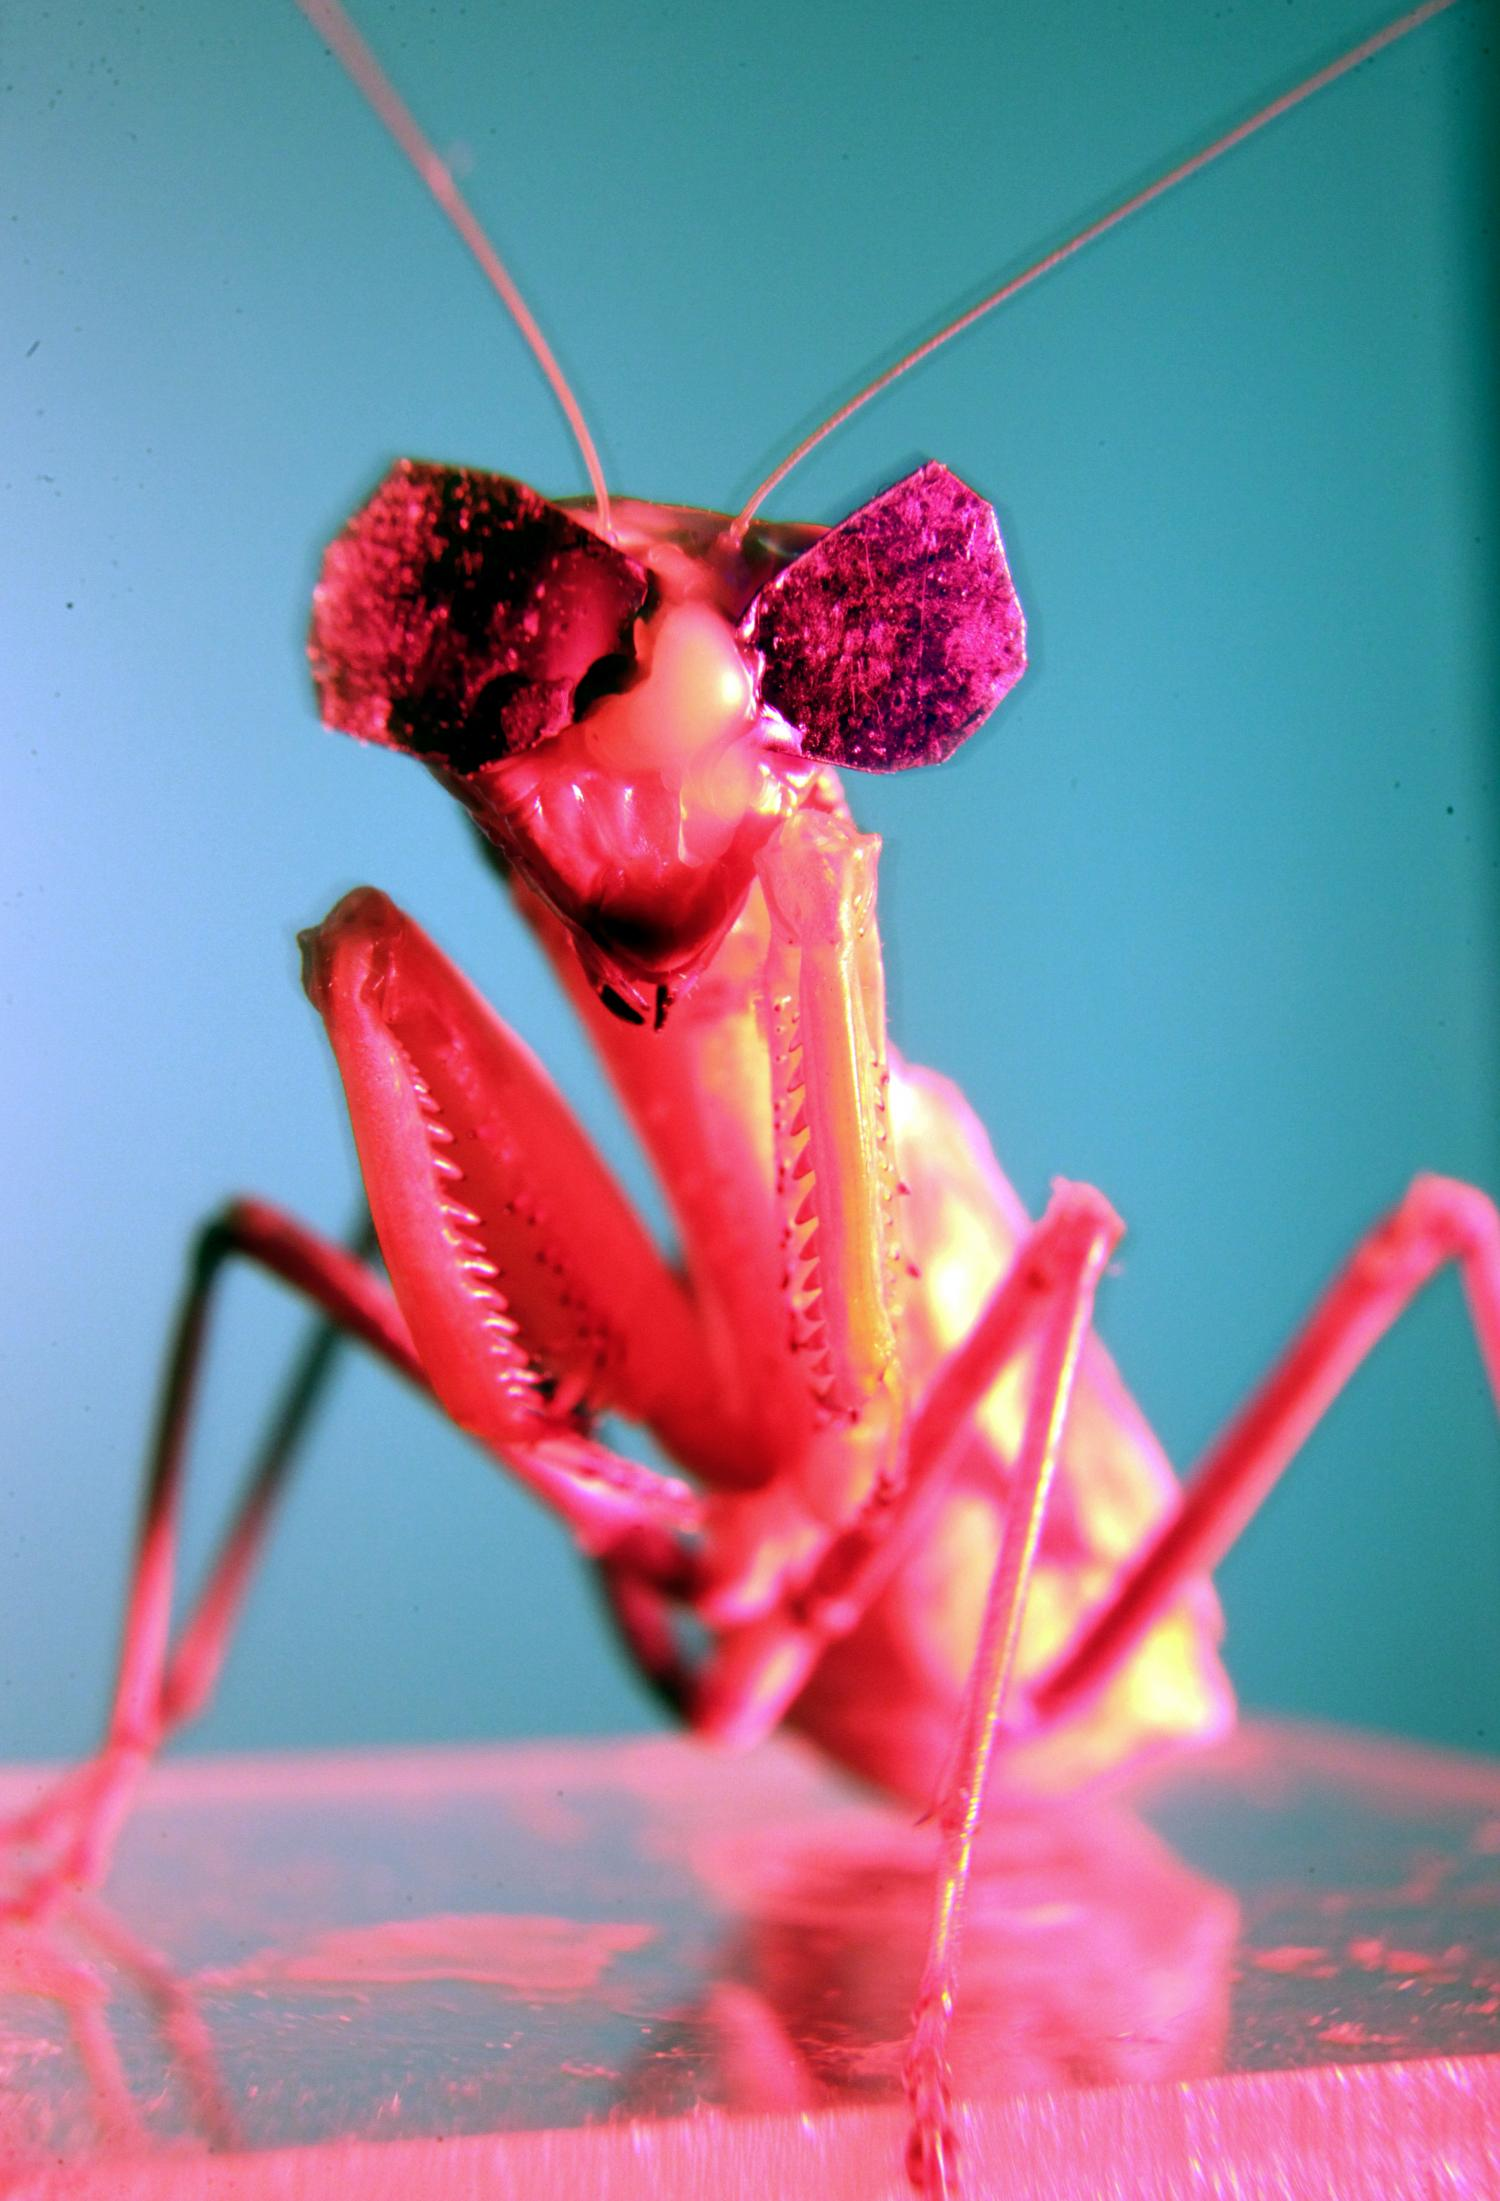 Bug Eyes Tiny 3 D Glasses Confirm Insect 3 D Vision